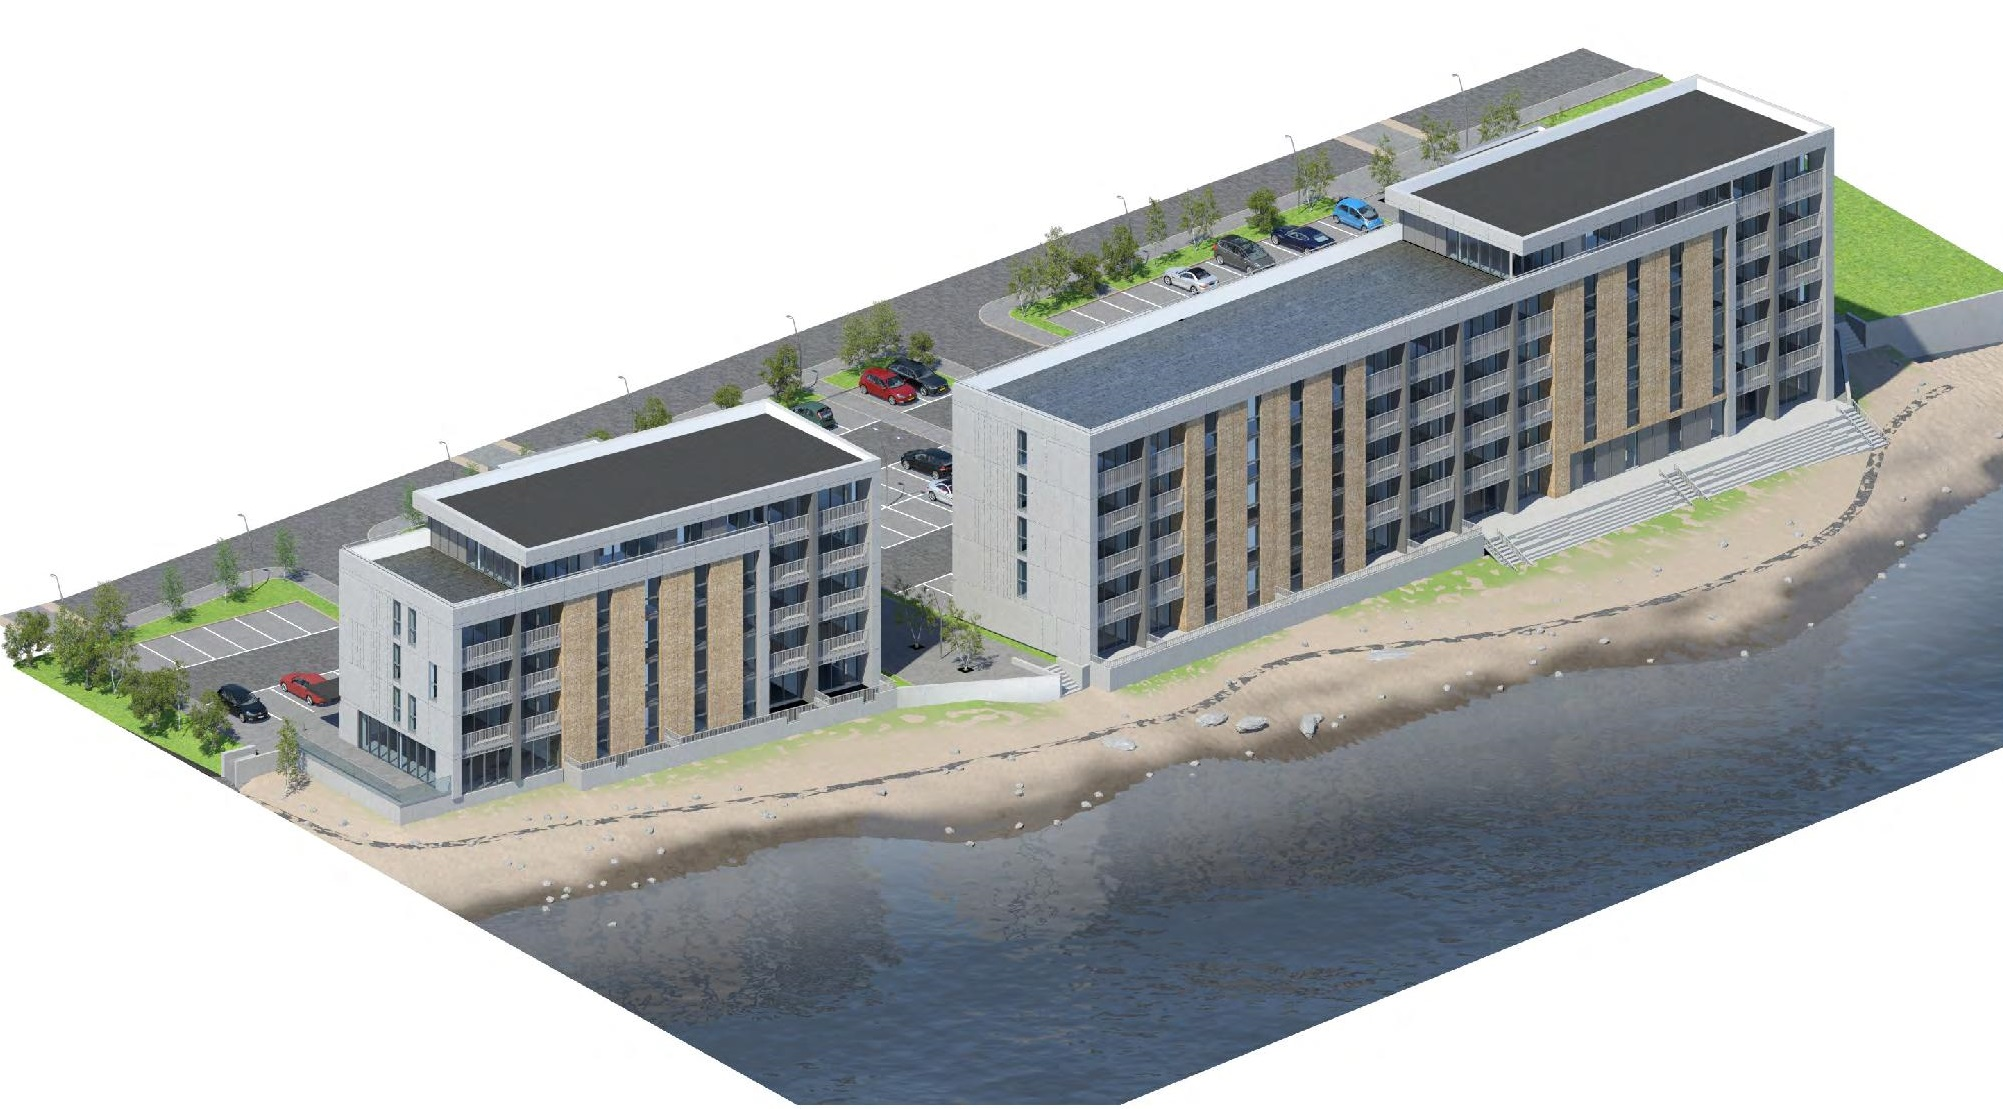 An artist's impression of how the new development could look.